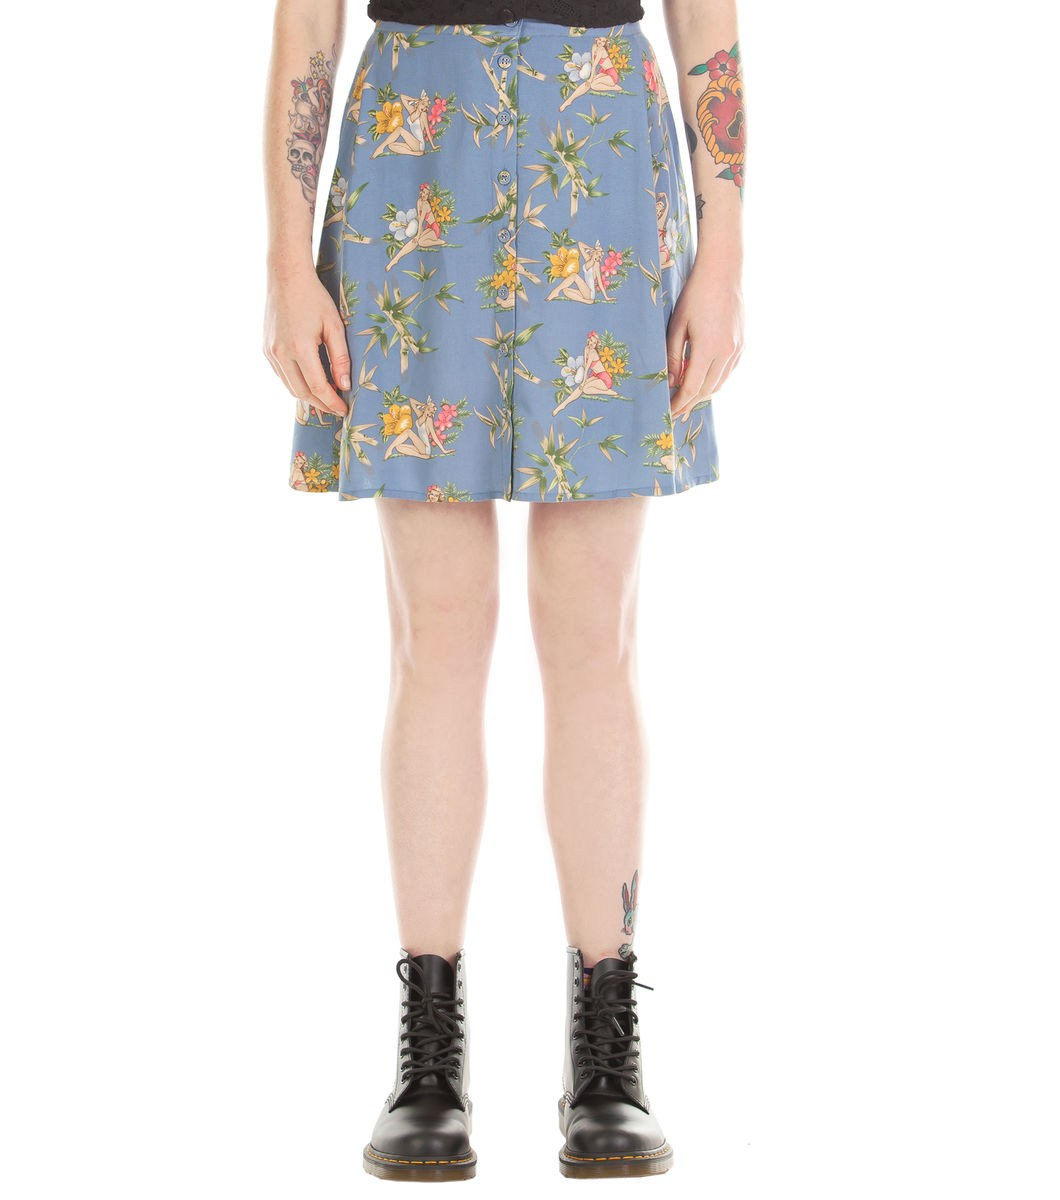 Betty Page Hawaii Skirt